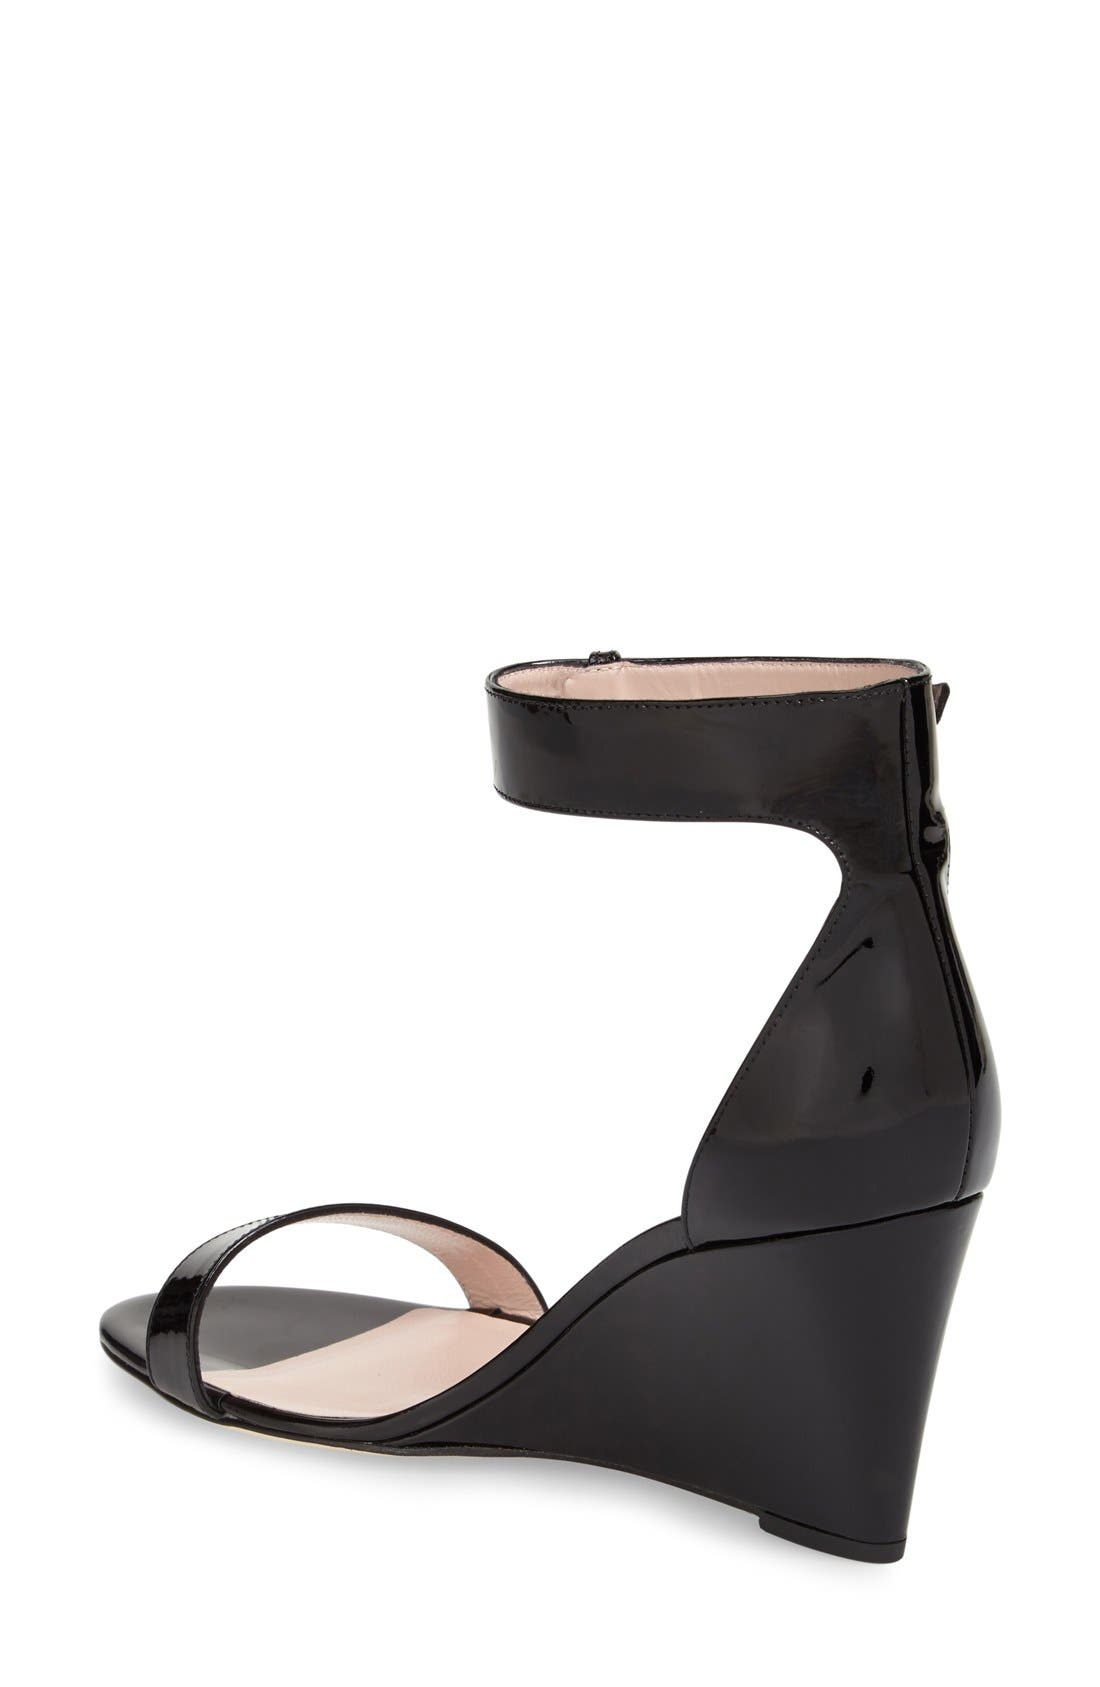 'ronia' wedge sandal,                             Alternate thumbnail 2, color,                             Black Patent